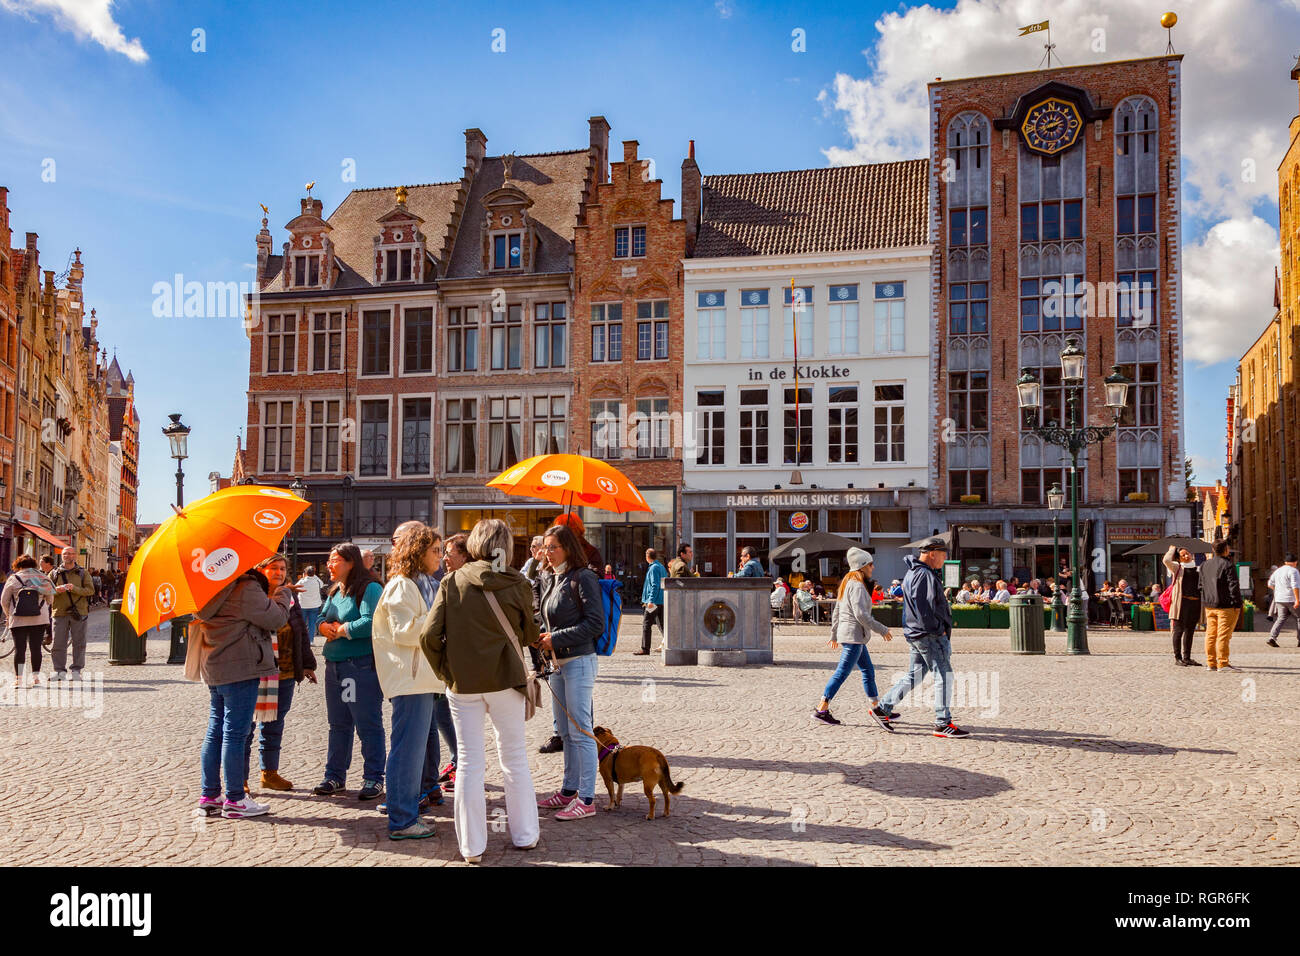 25 September 2018: Bruges, Belgium - Tour group under orange umbrellas in the centre of the city, Markt Square, on a sunny, autumn day with glorious b Stock Photo